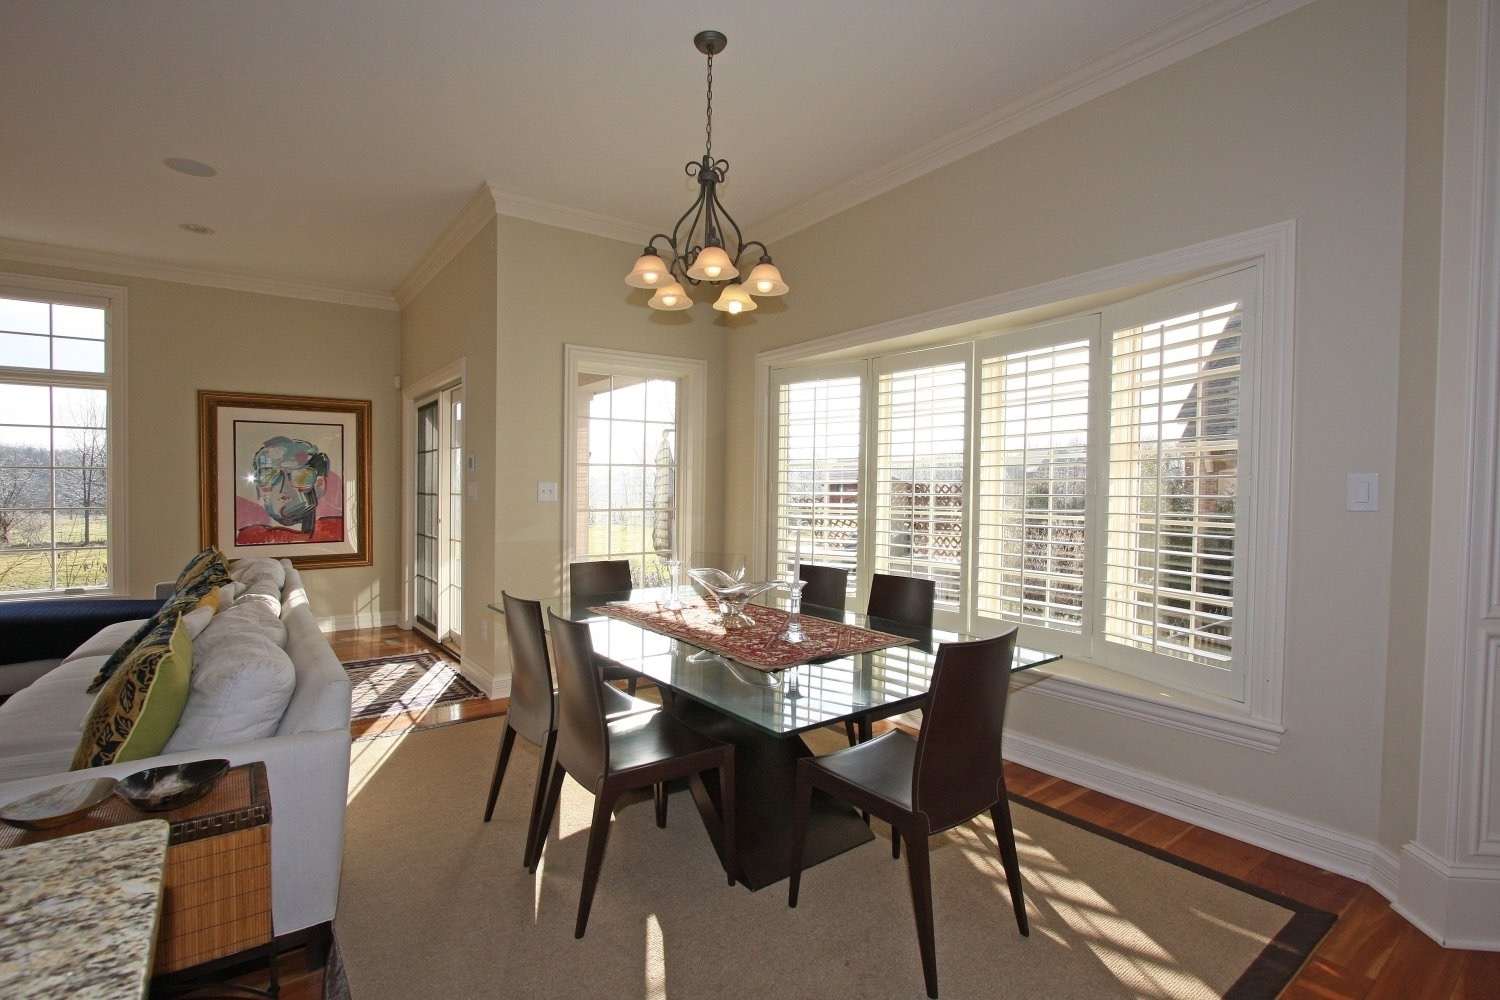 Simple Lighting For Dining Room (View 30 of 32)